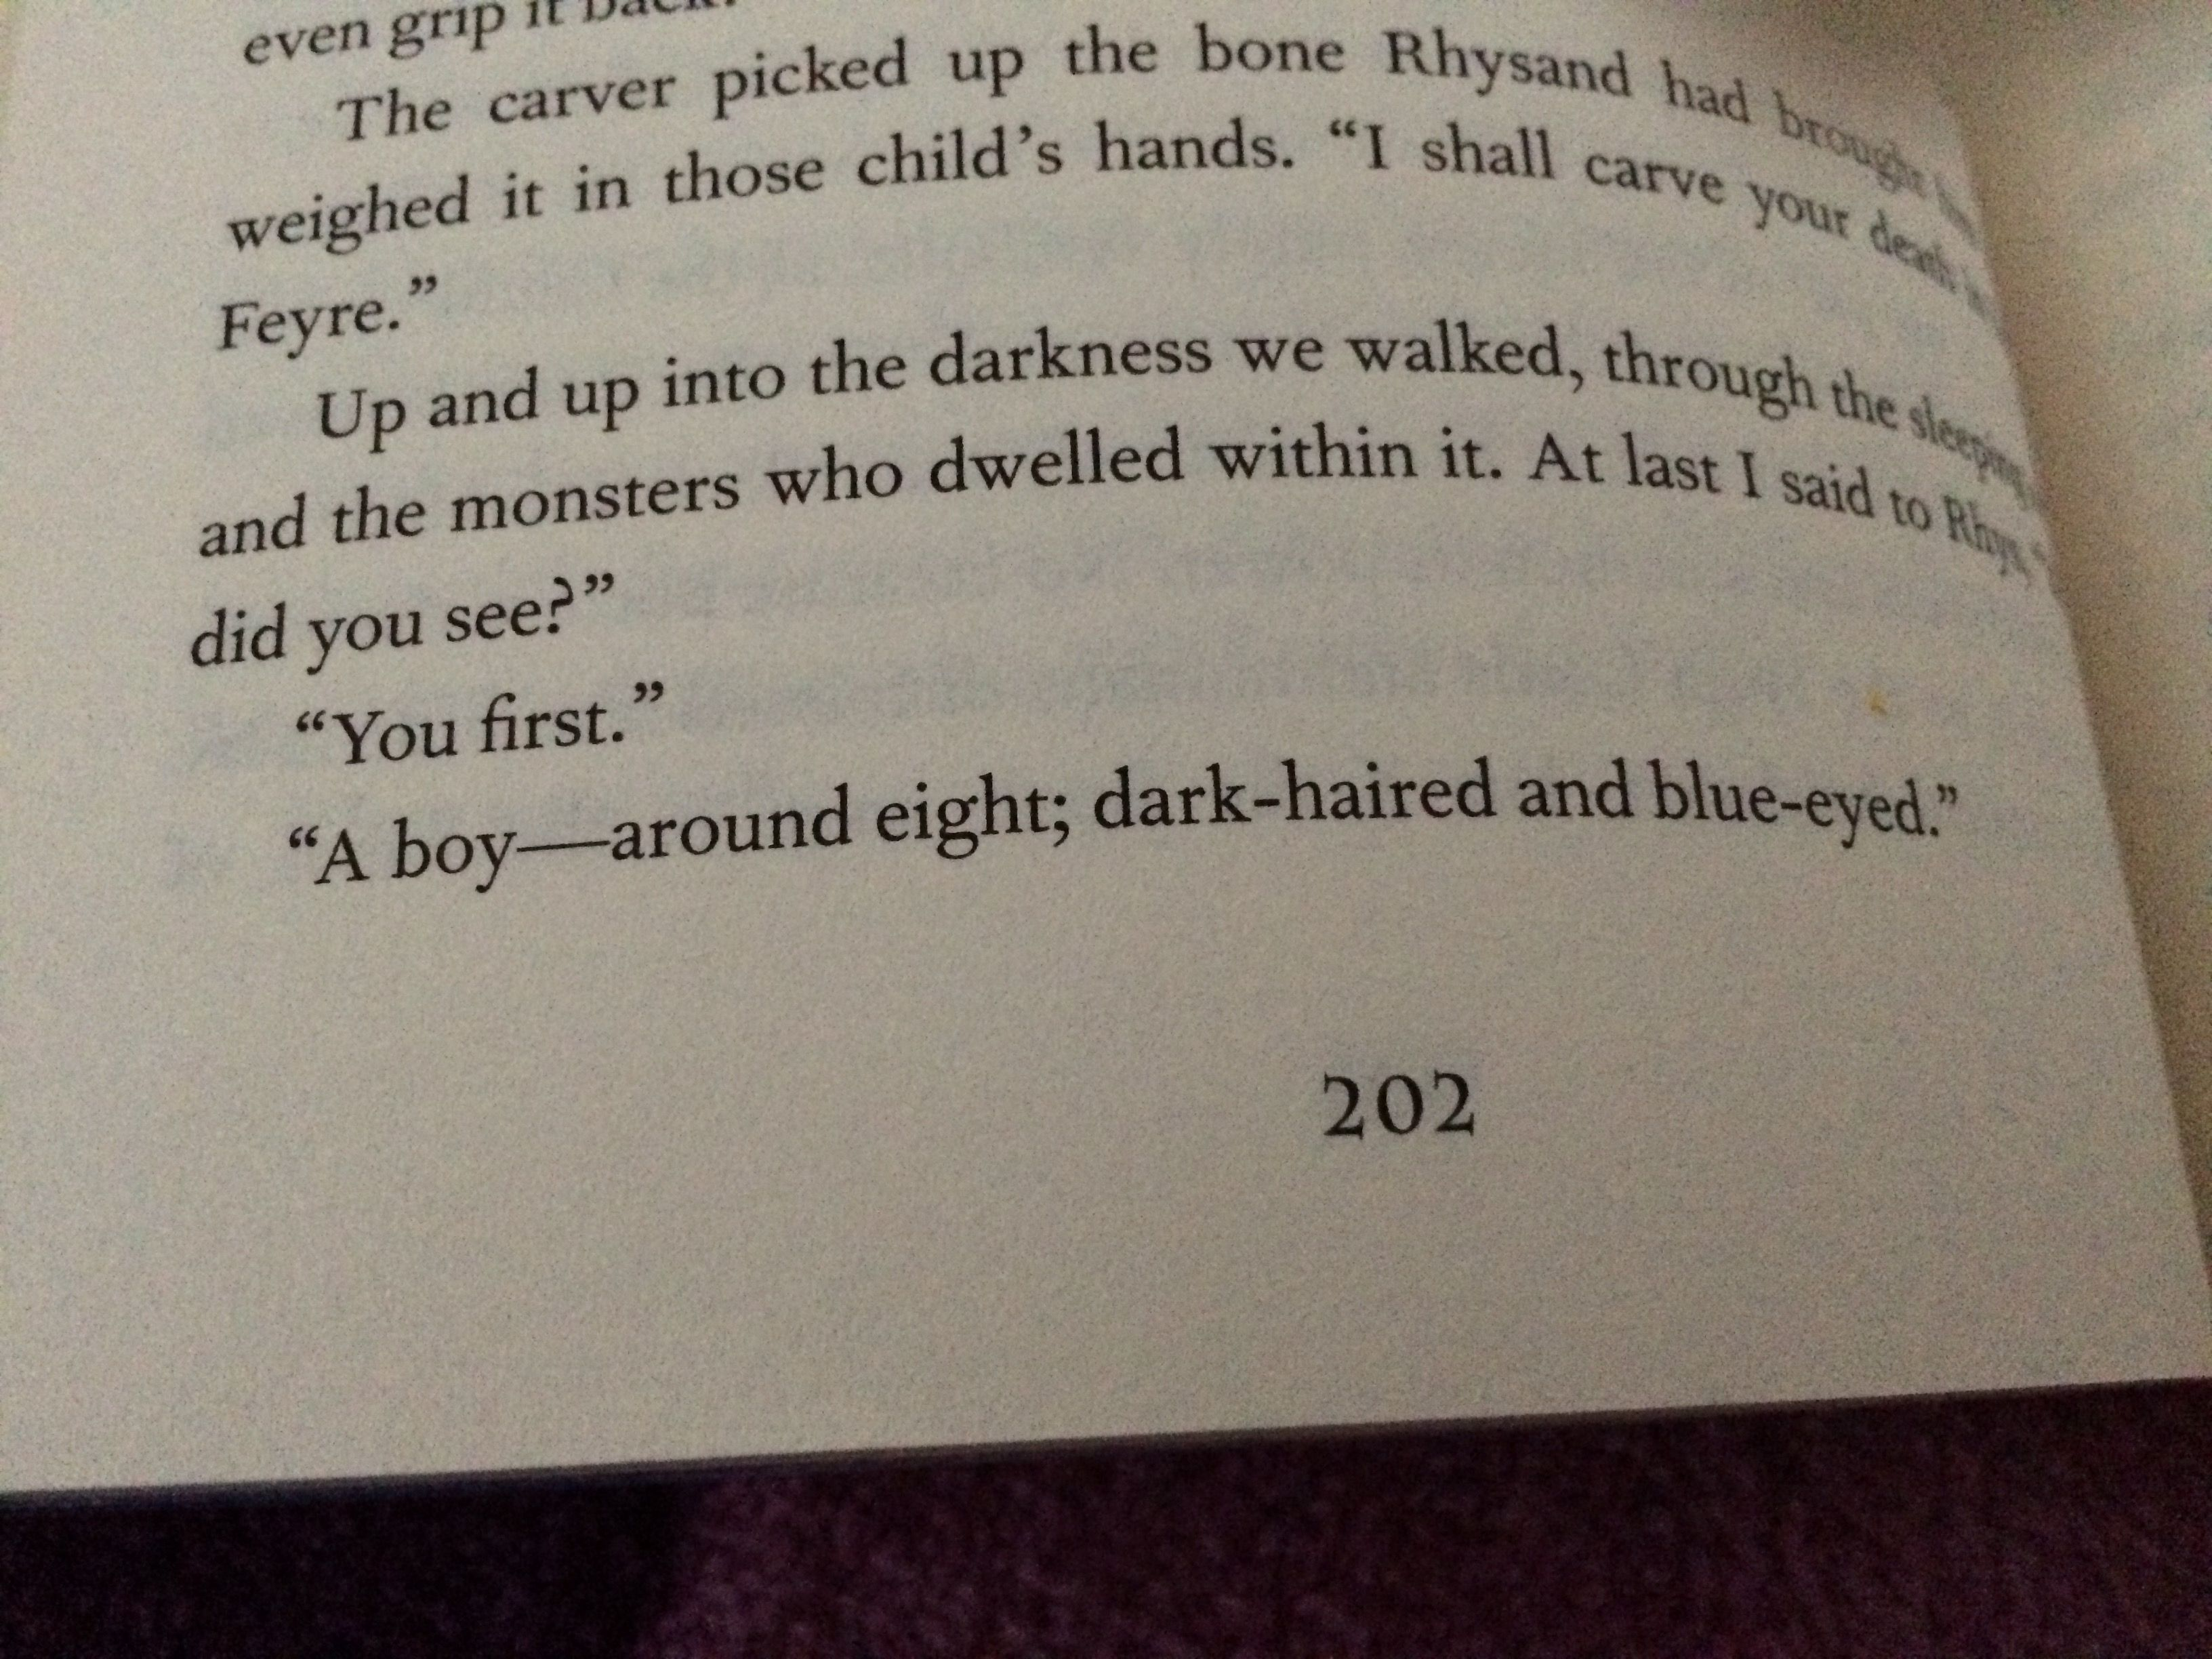 Does Anyone Else Think That The Eight Year Old Boy Feyre Saw As